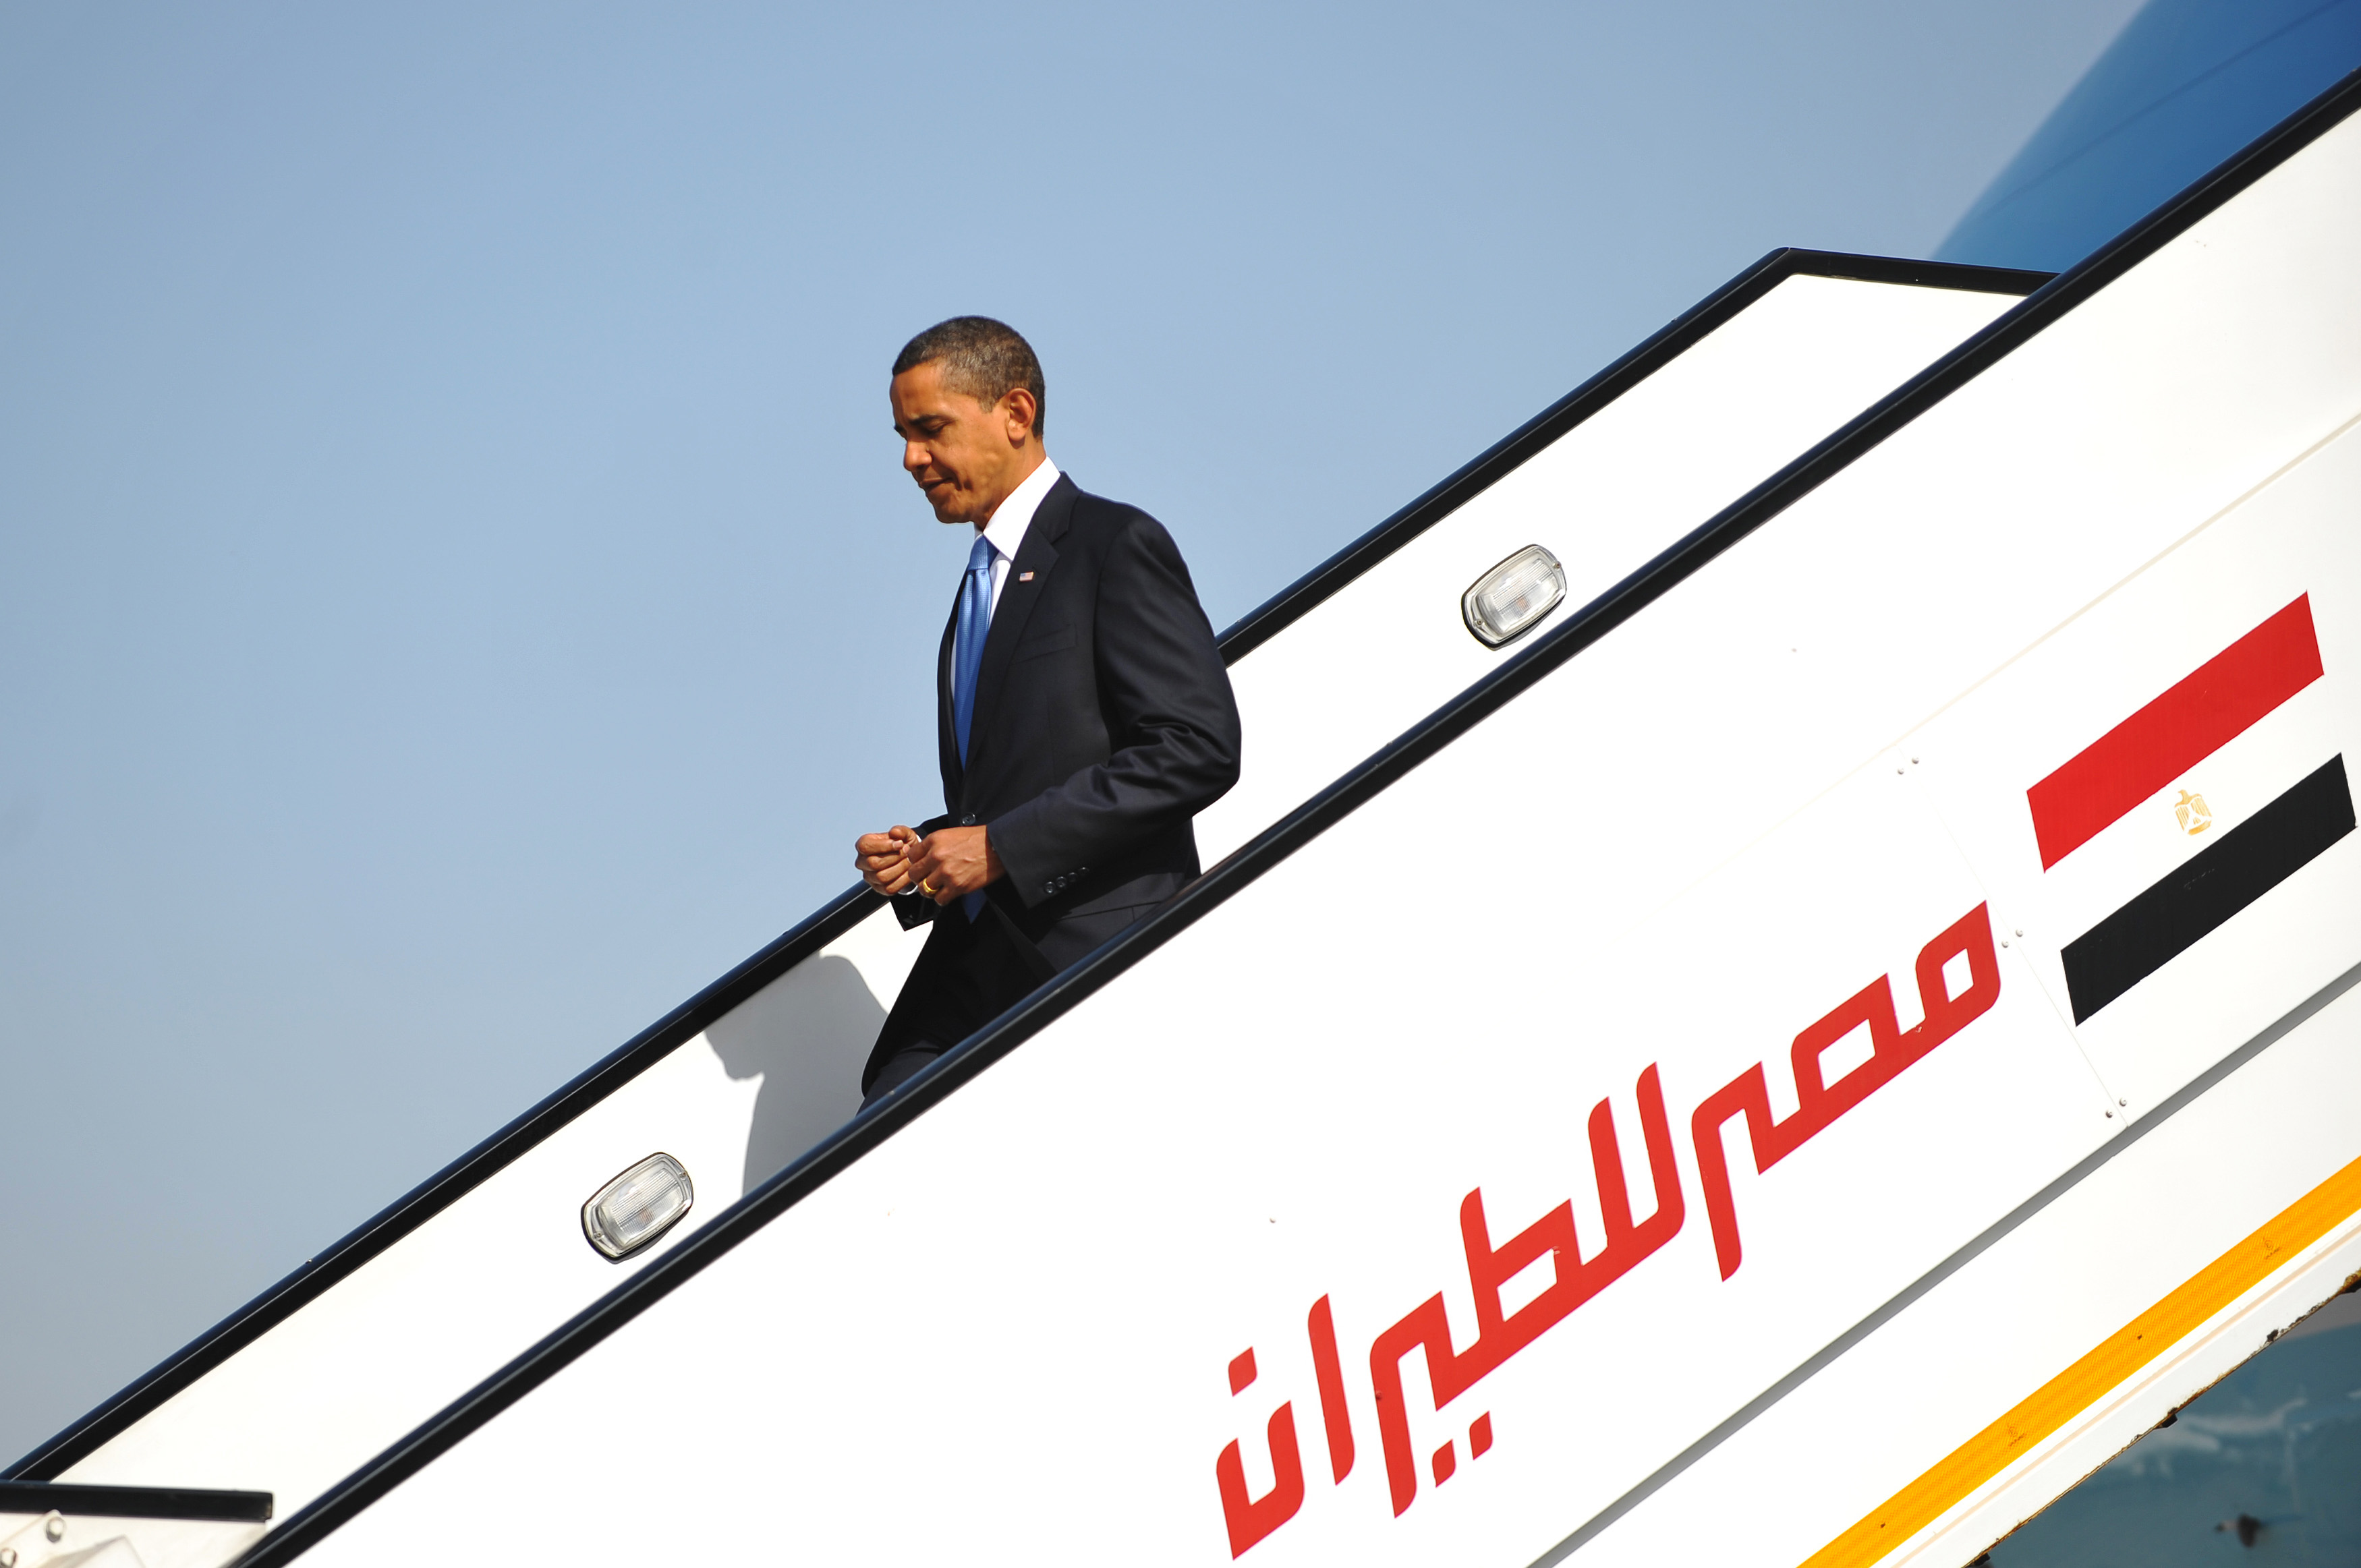 why republicans want obama to denounce radical islam and why  obama arrives in 2009